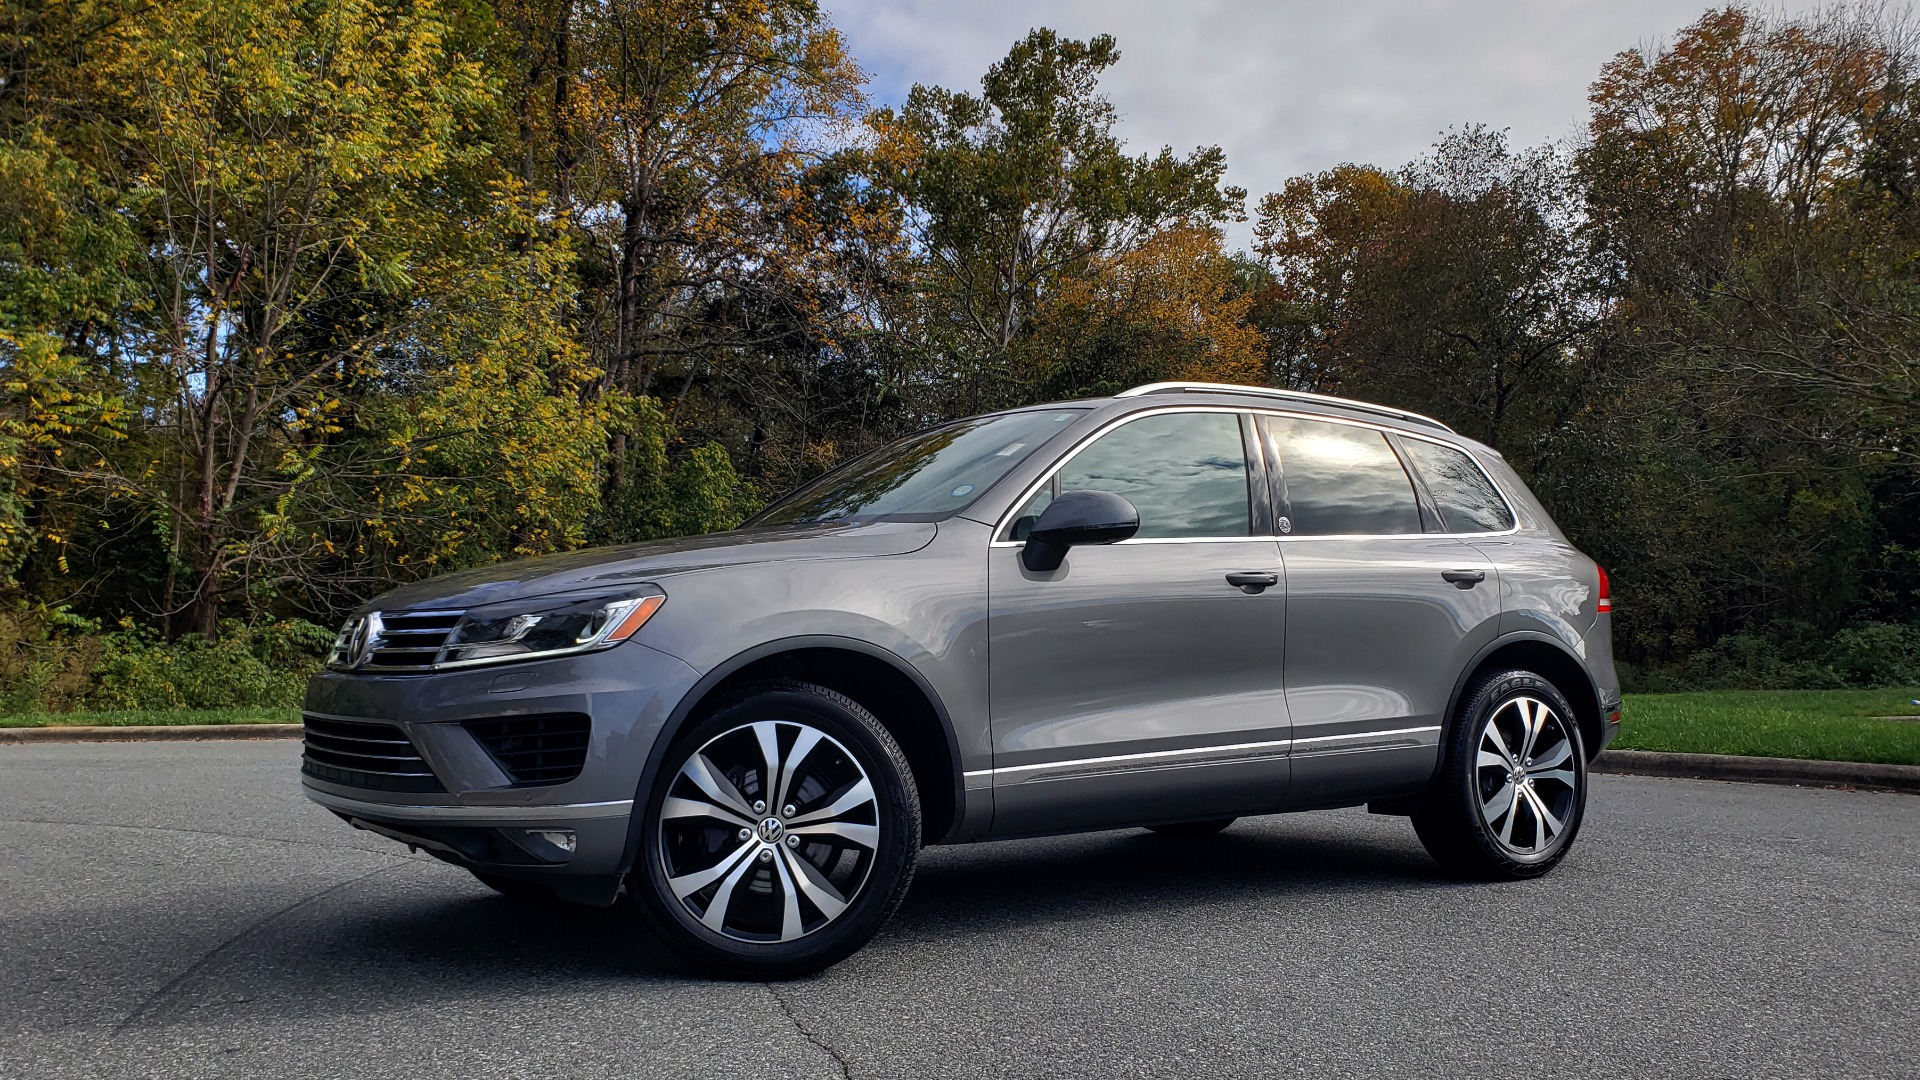 Used 2017 Volkswagen TOUAREG V6 WOLFSBURG EDITION / NAV / PANO-ROOF / ACC / REARVIEW for sale Sold at Formula Imports in Charlotte NC 28227 2